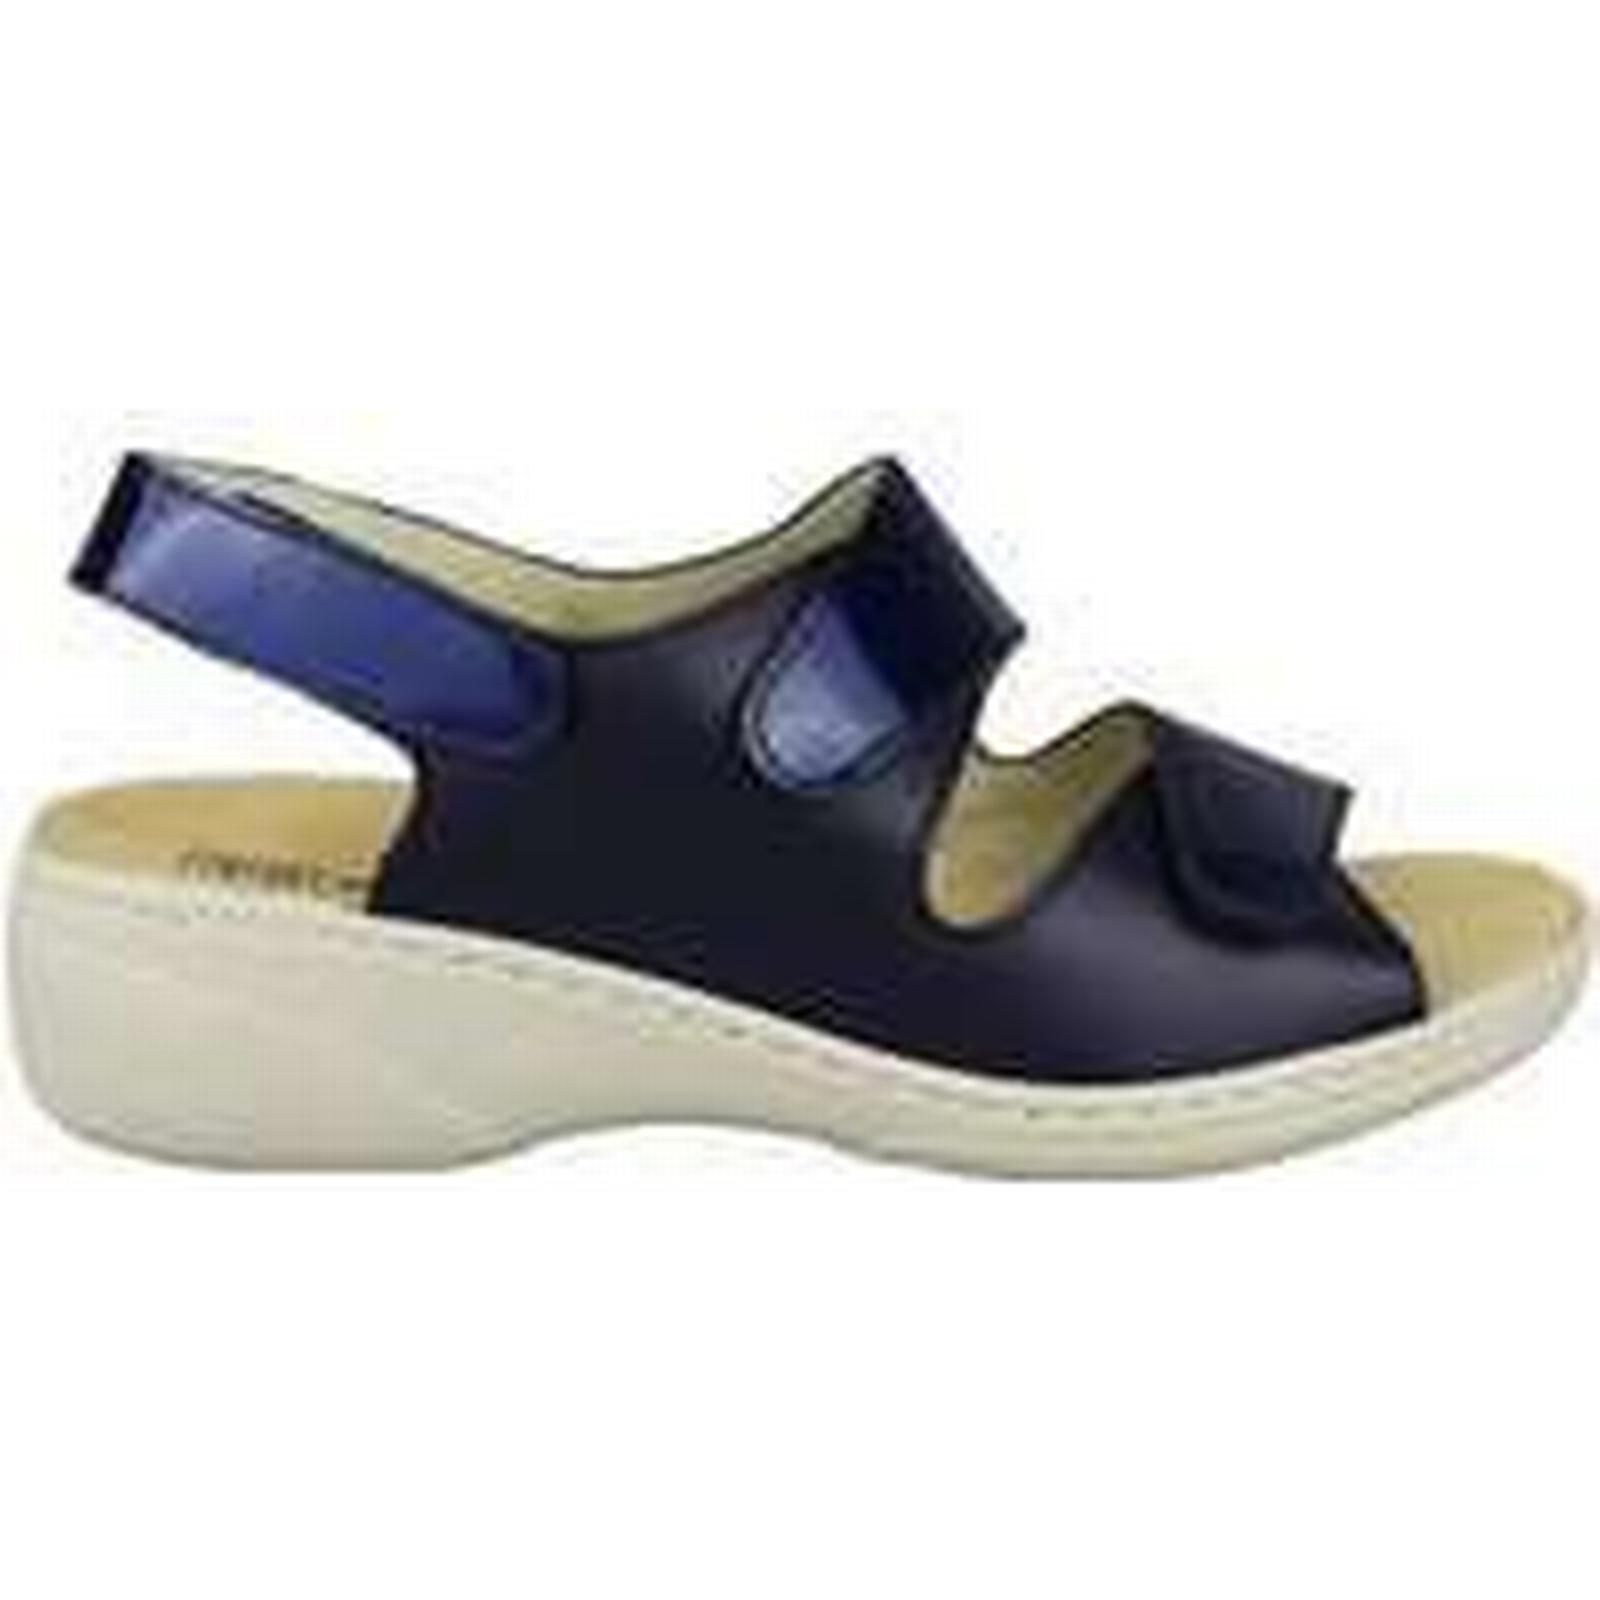 Spartoo.co.uk Comfort Class Sandals PLANTILLA EXTRAIBLE women's Sandals Class in Blue 552977